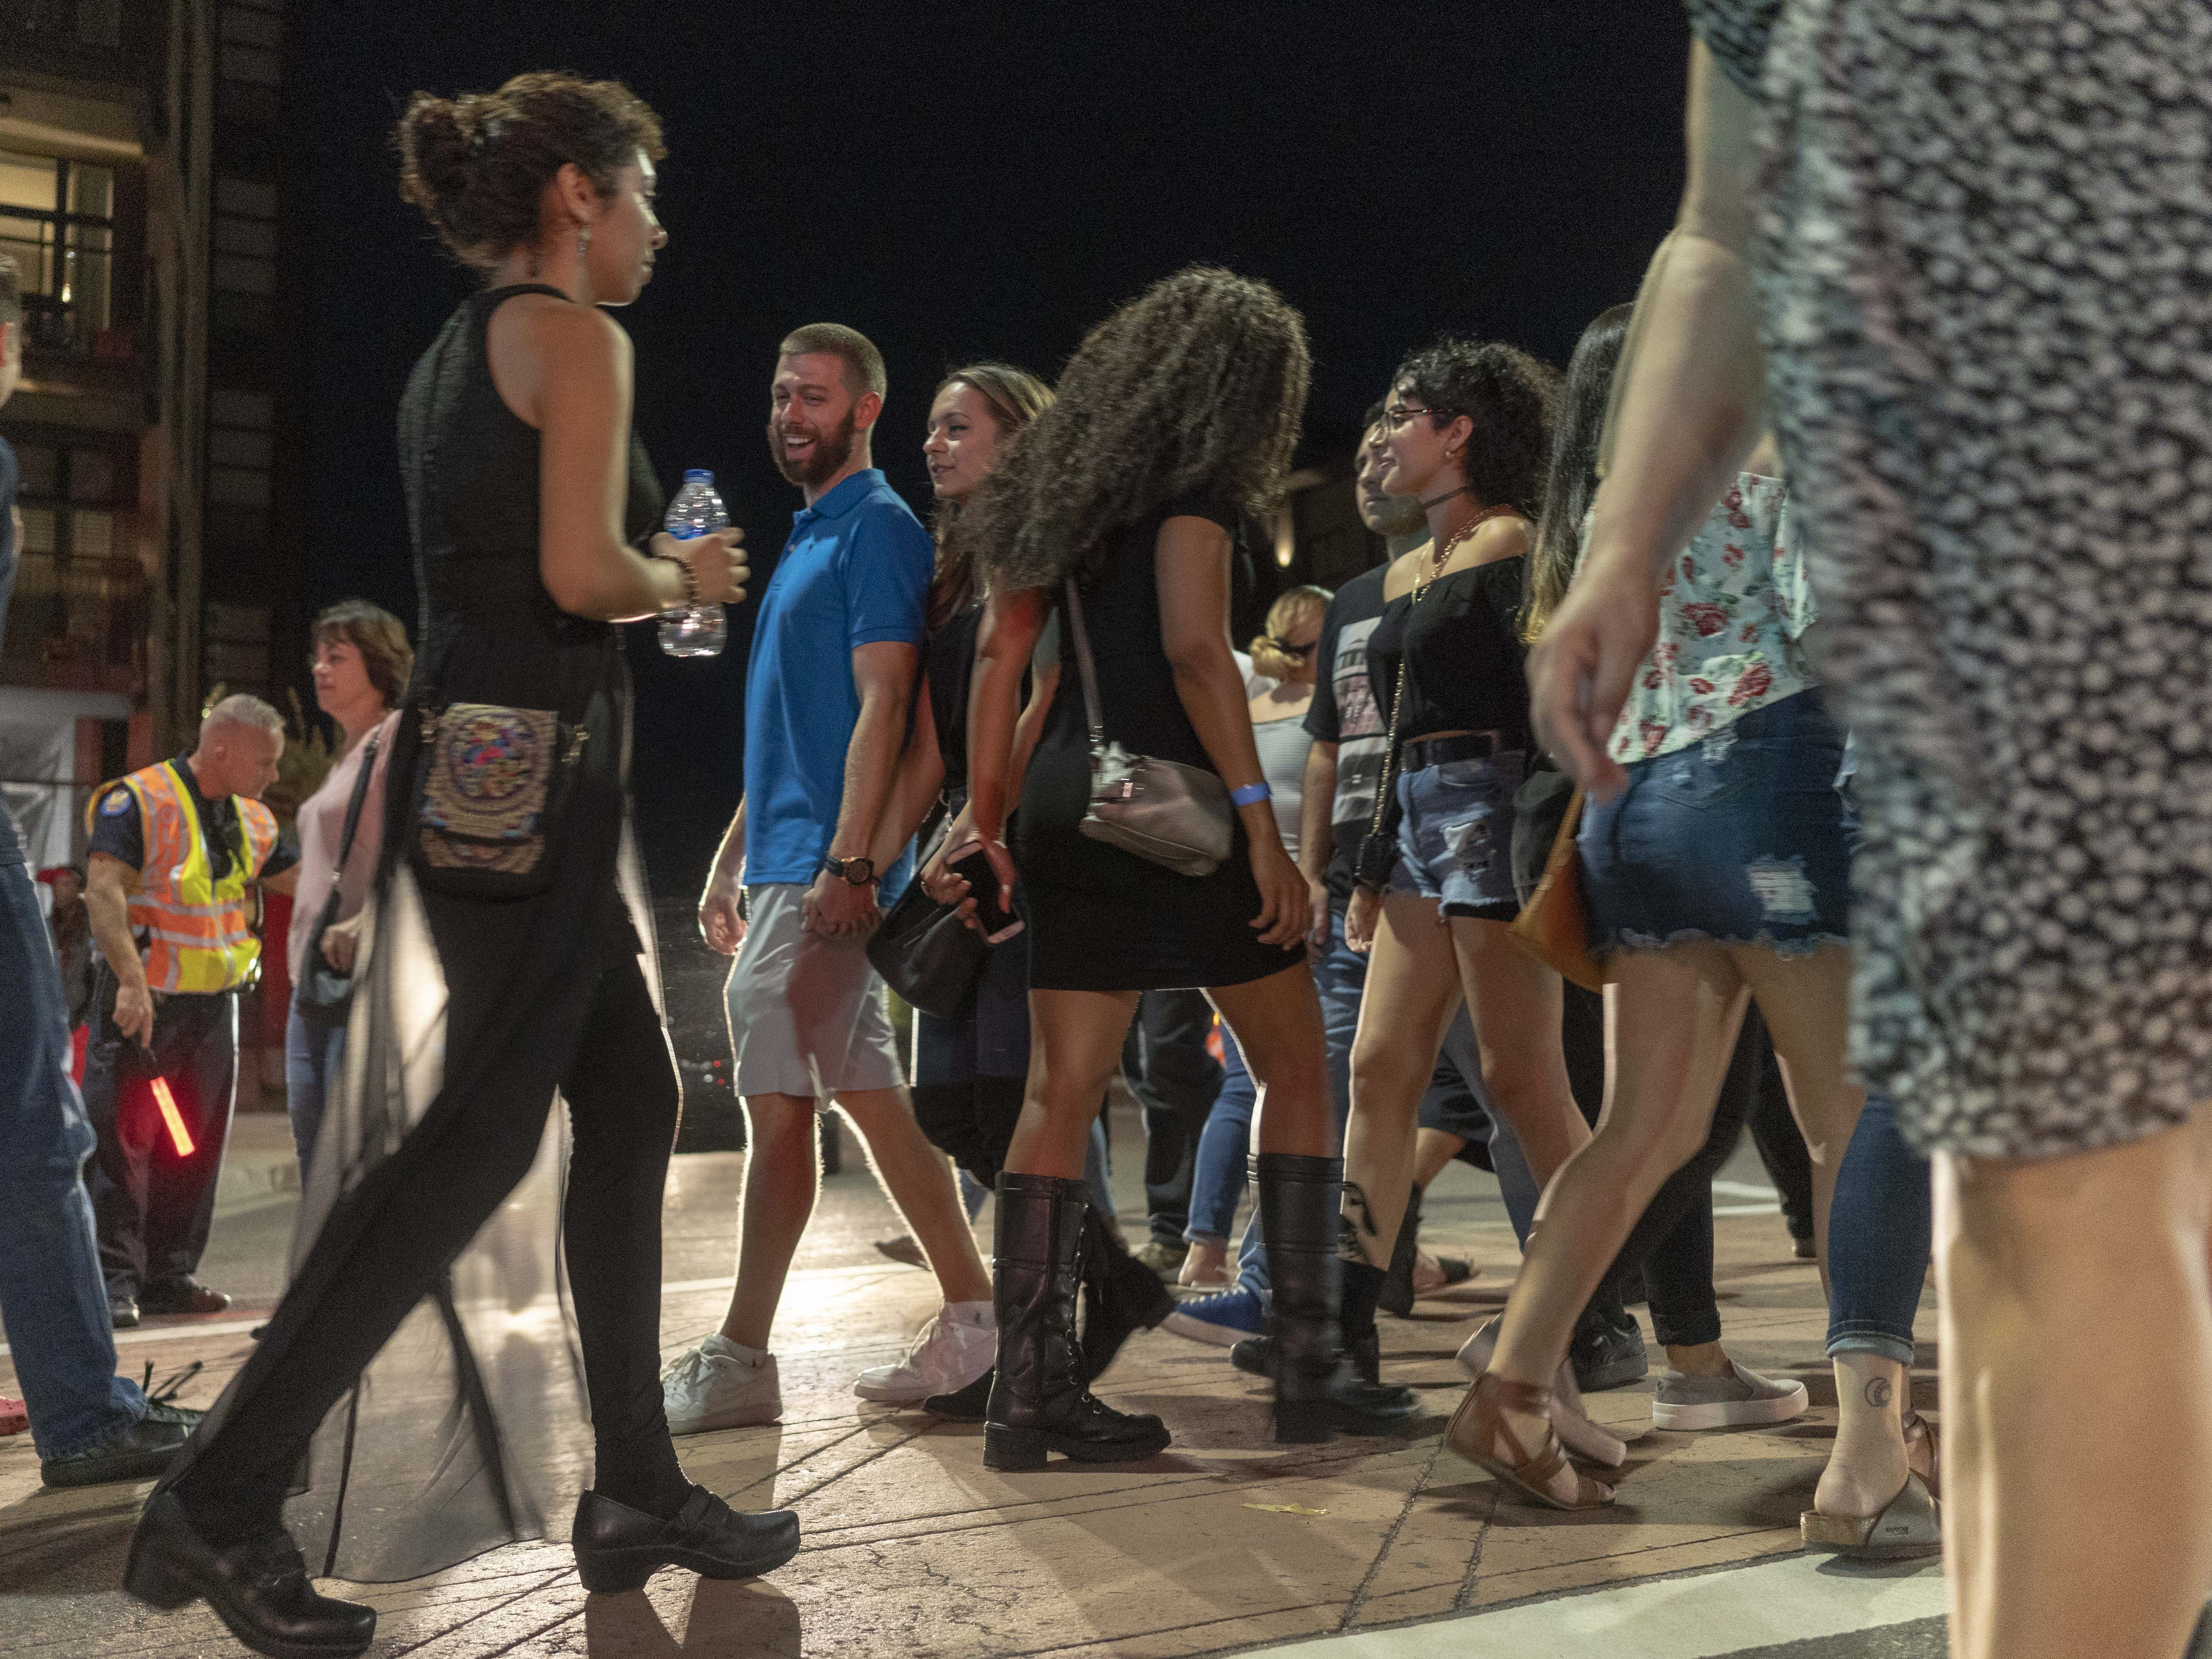 People enjoy street dance and art work  during the First Friday Art walk, on Roosevelt Street in Downtown Phoenix, on Oct 5th, 2018.